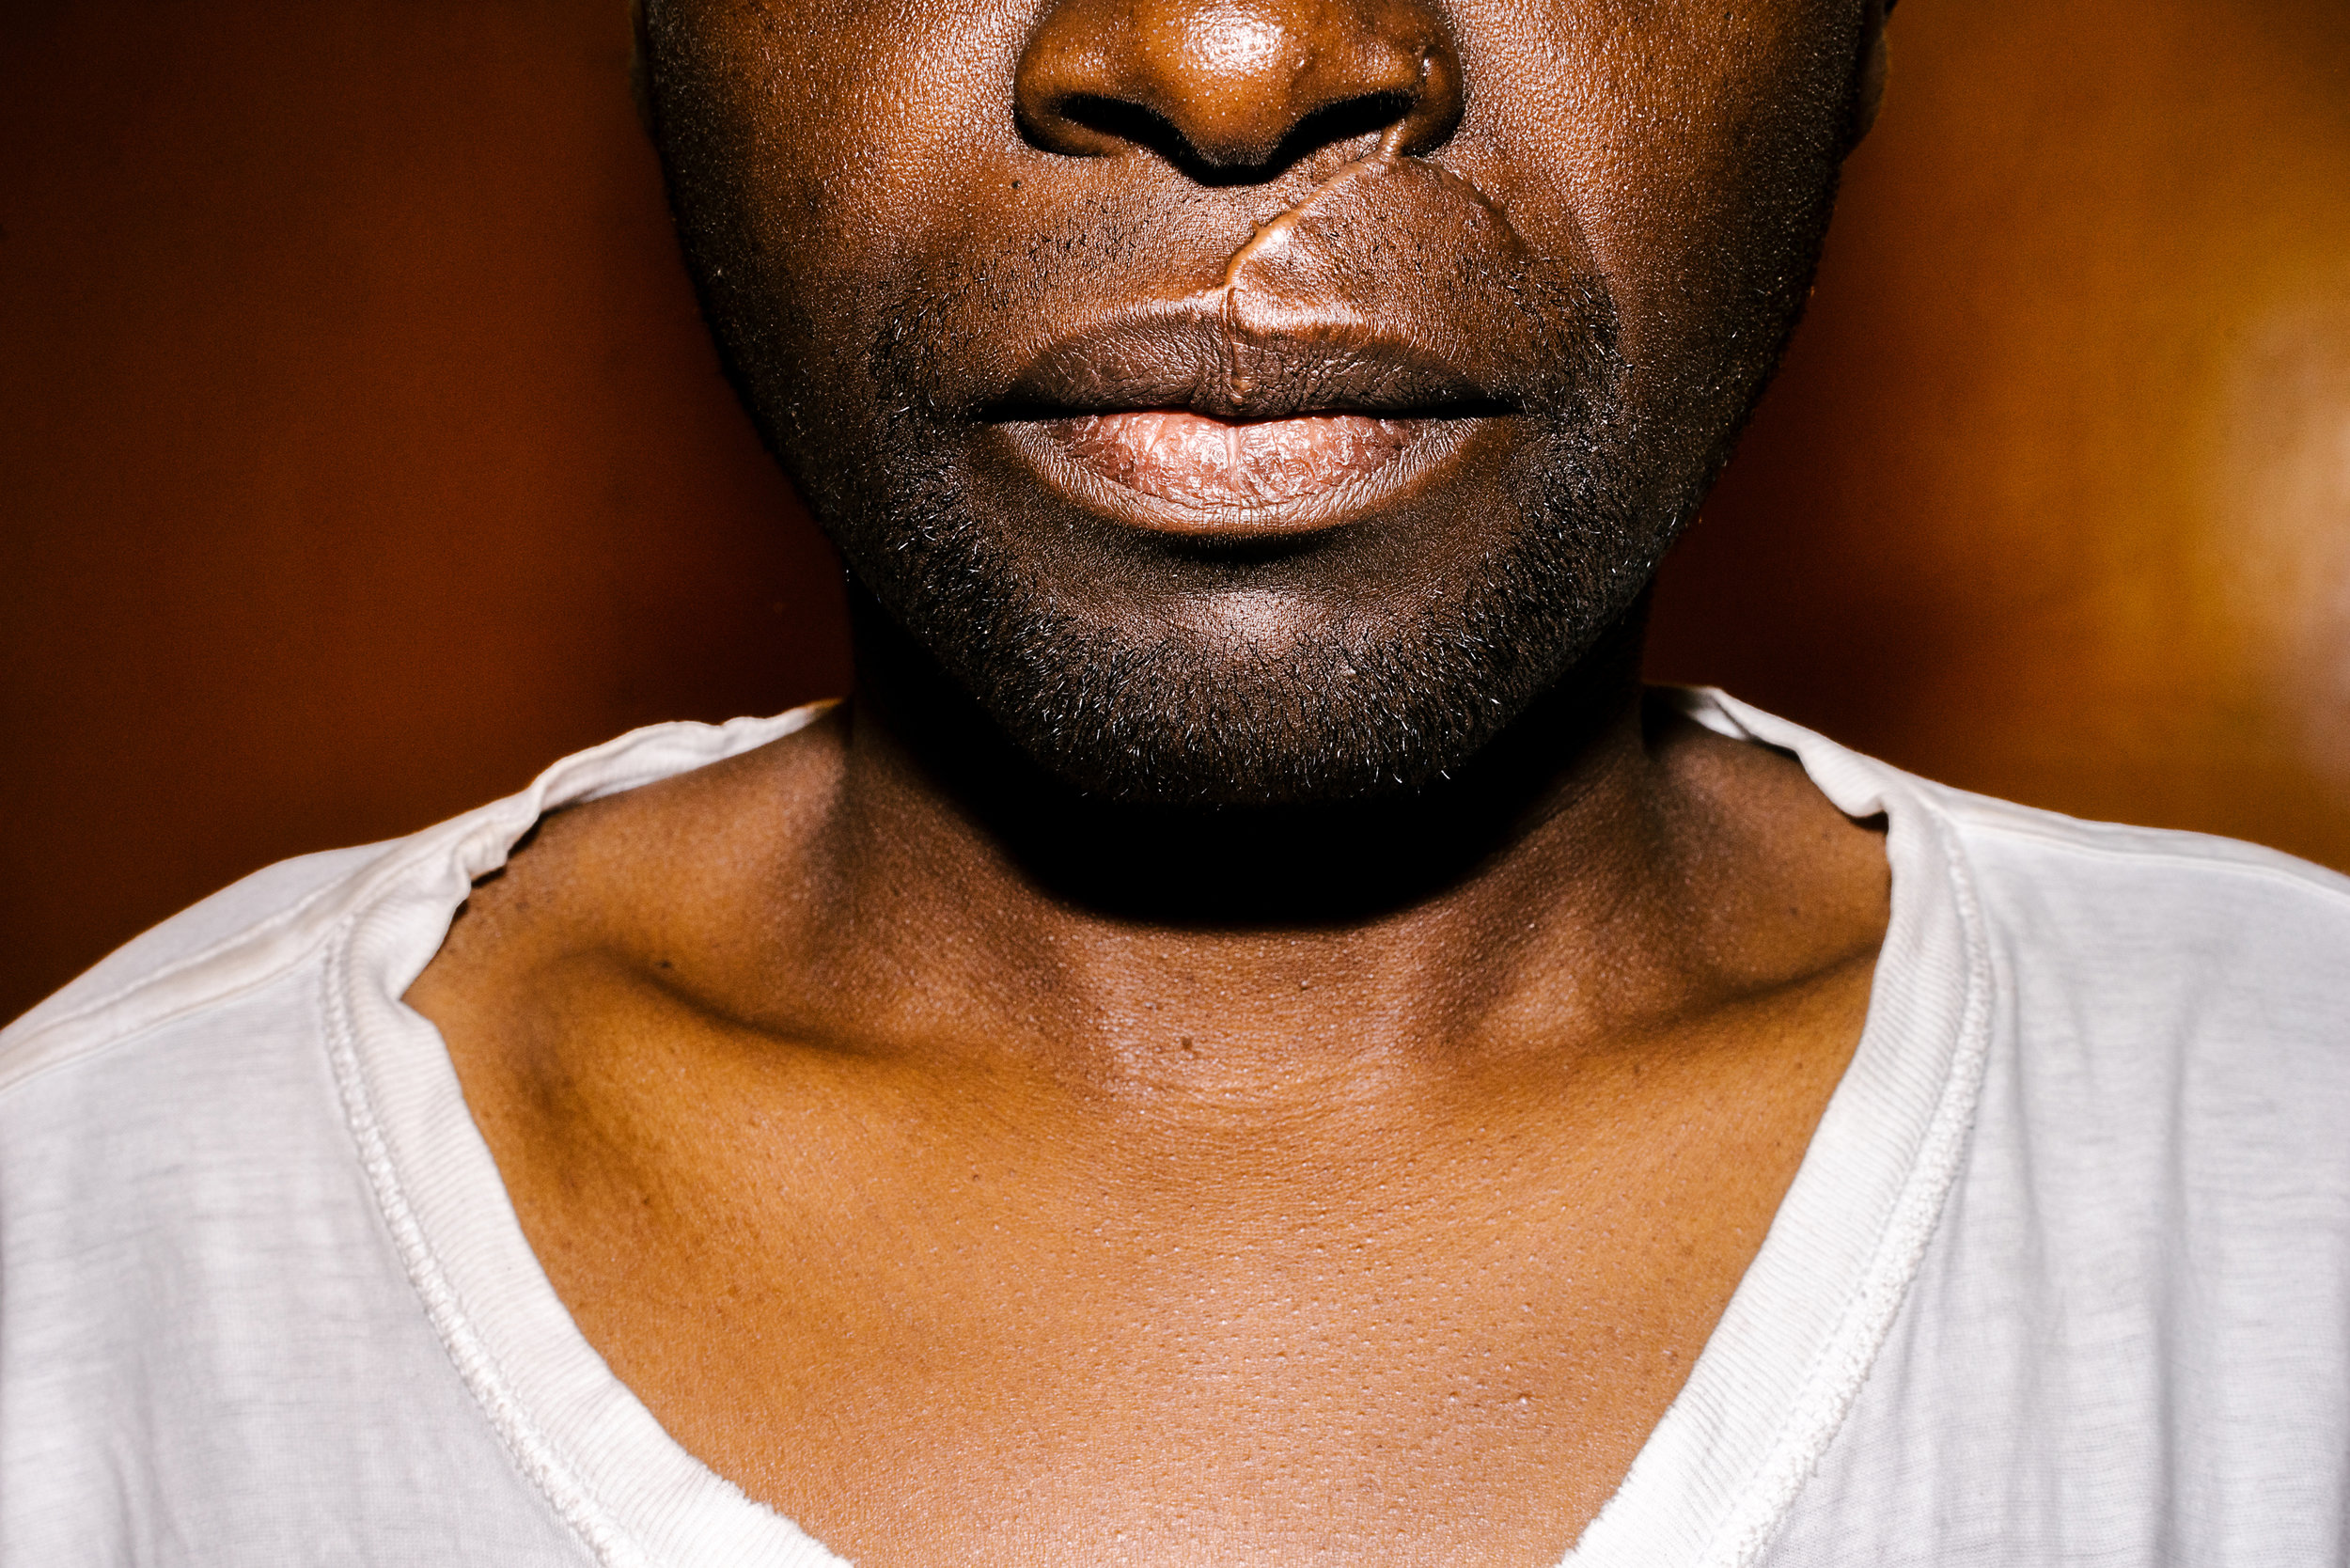 Soon after arriving in Kenya, Sulait was attacked by seven men with machetes. Here, he poses for a portrait in the apartment he shared with his boyfriend, with one scar from the attack clearly visible. Others on his face and chest are not seen. Both he and his boyfriend have since been resettled in the United States.